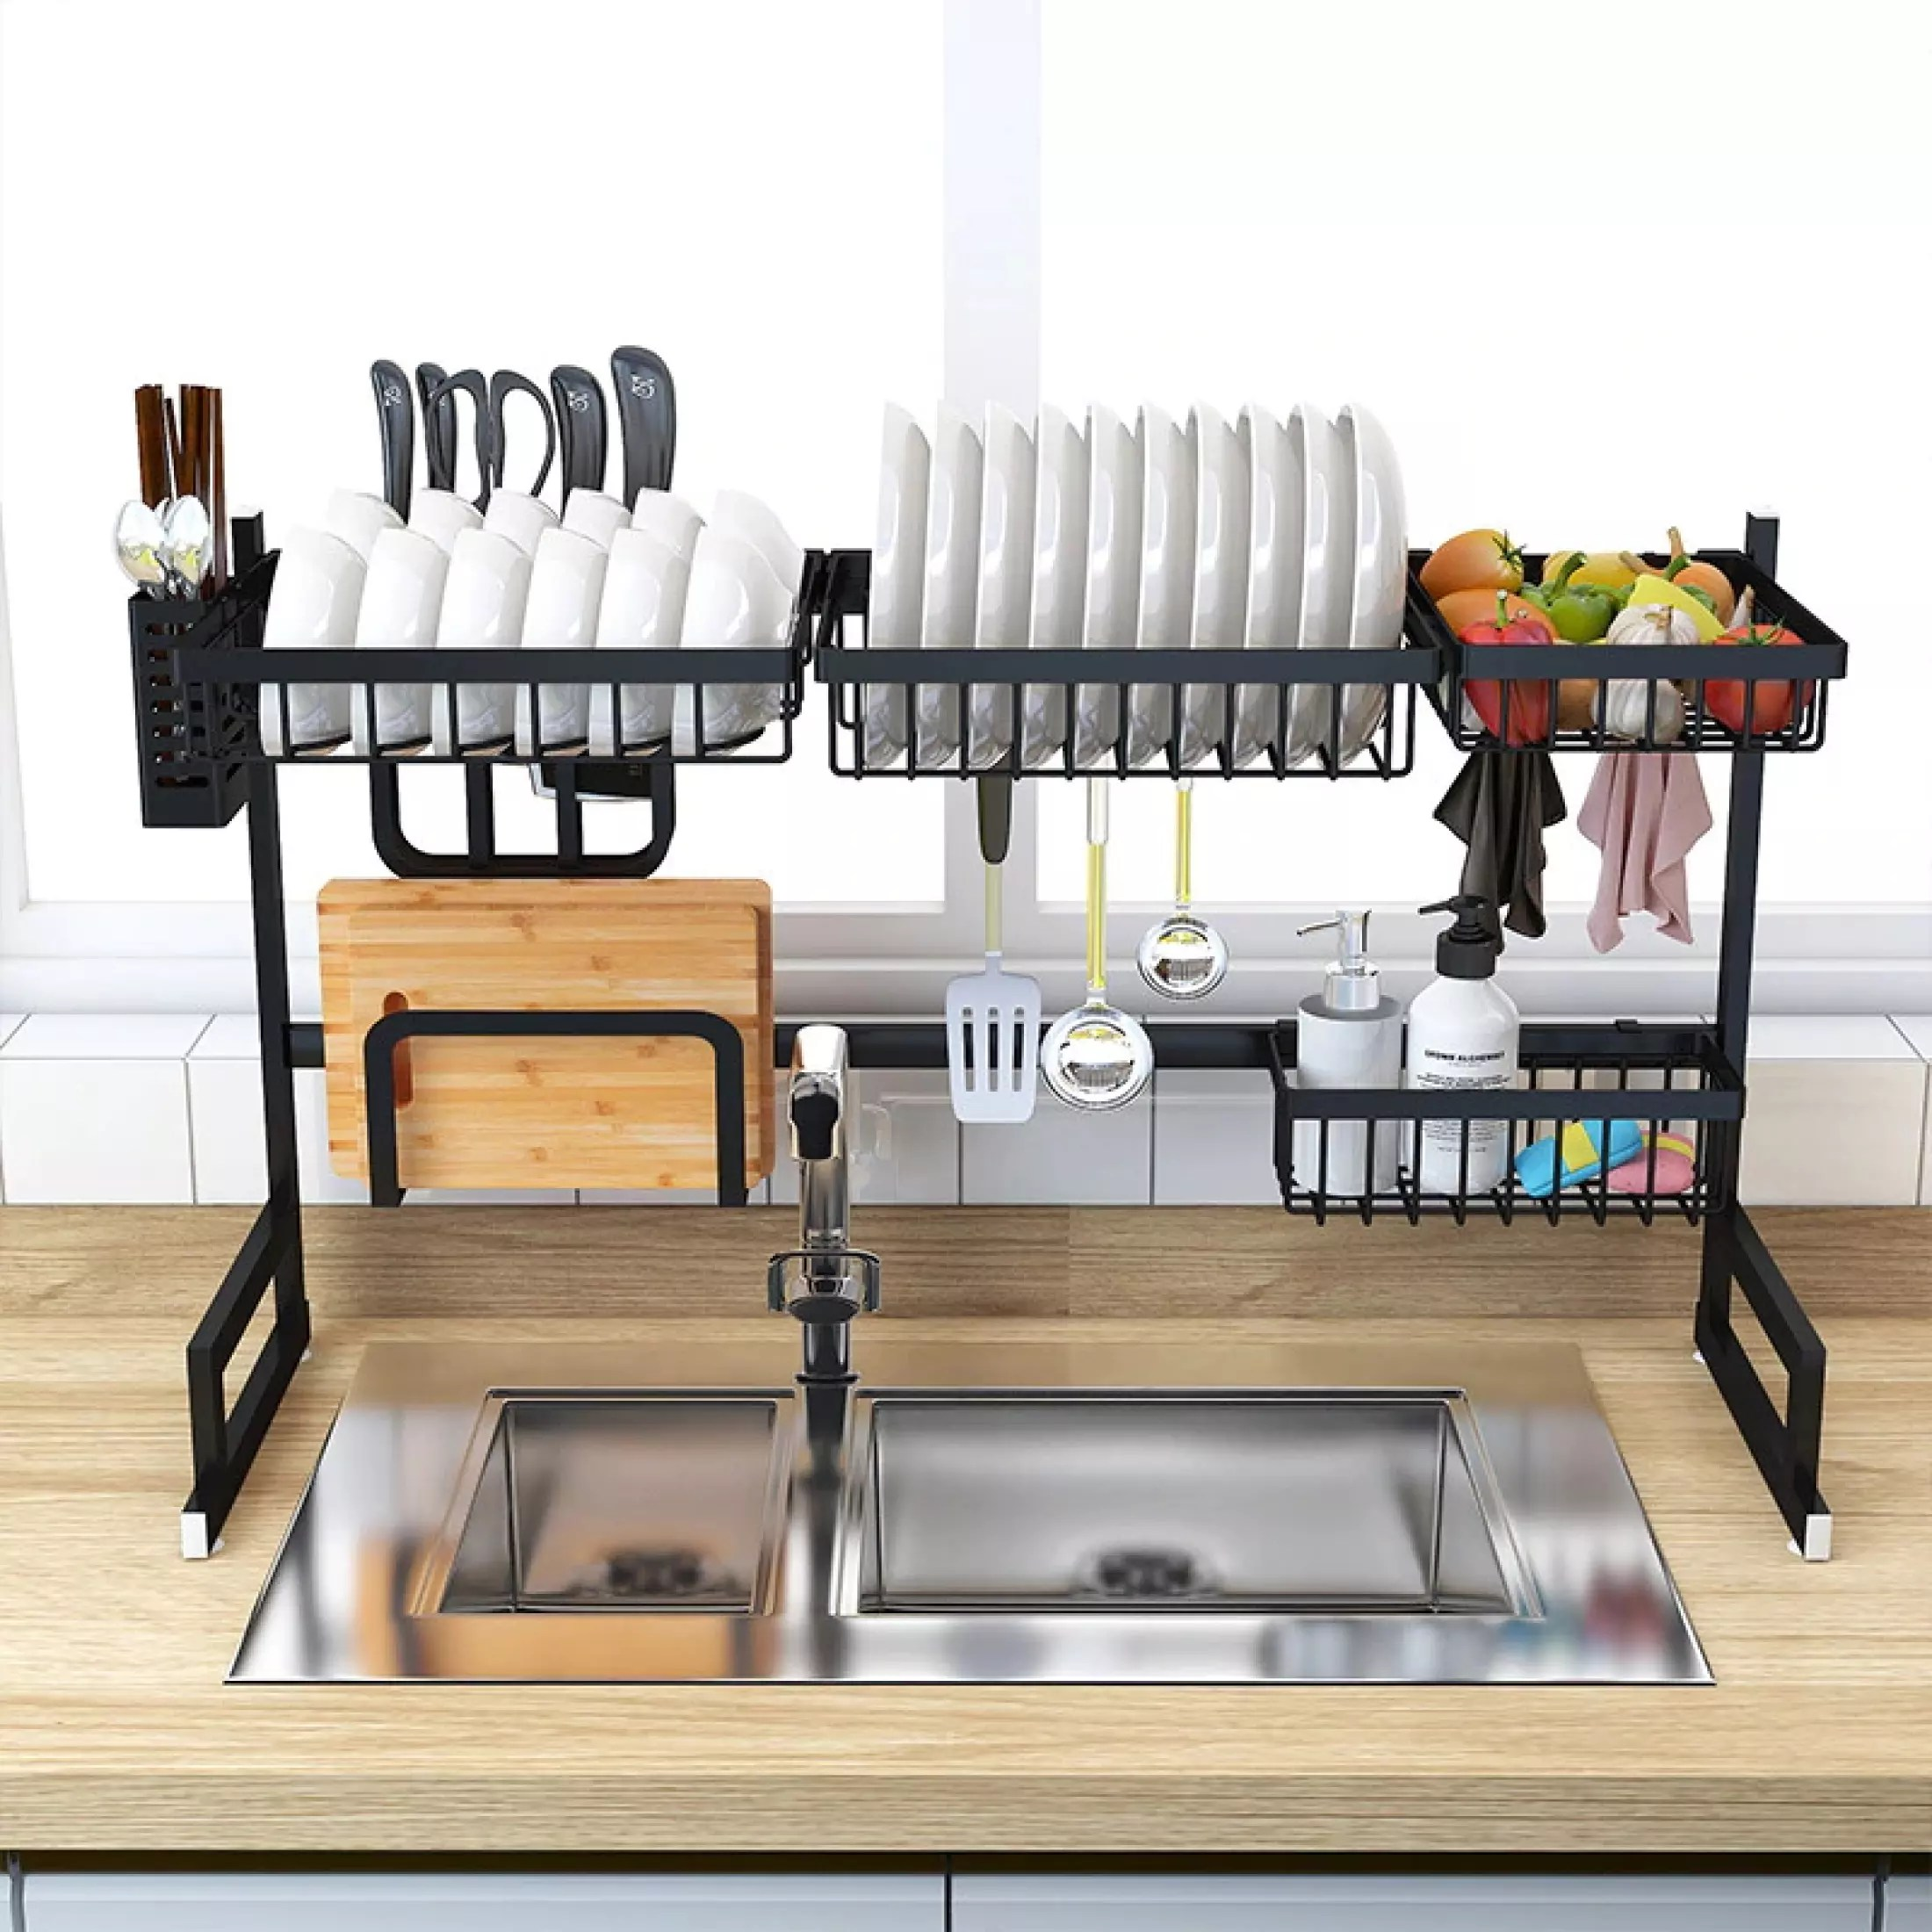 space saver over sink dish drainer rack